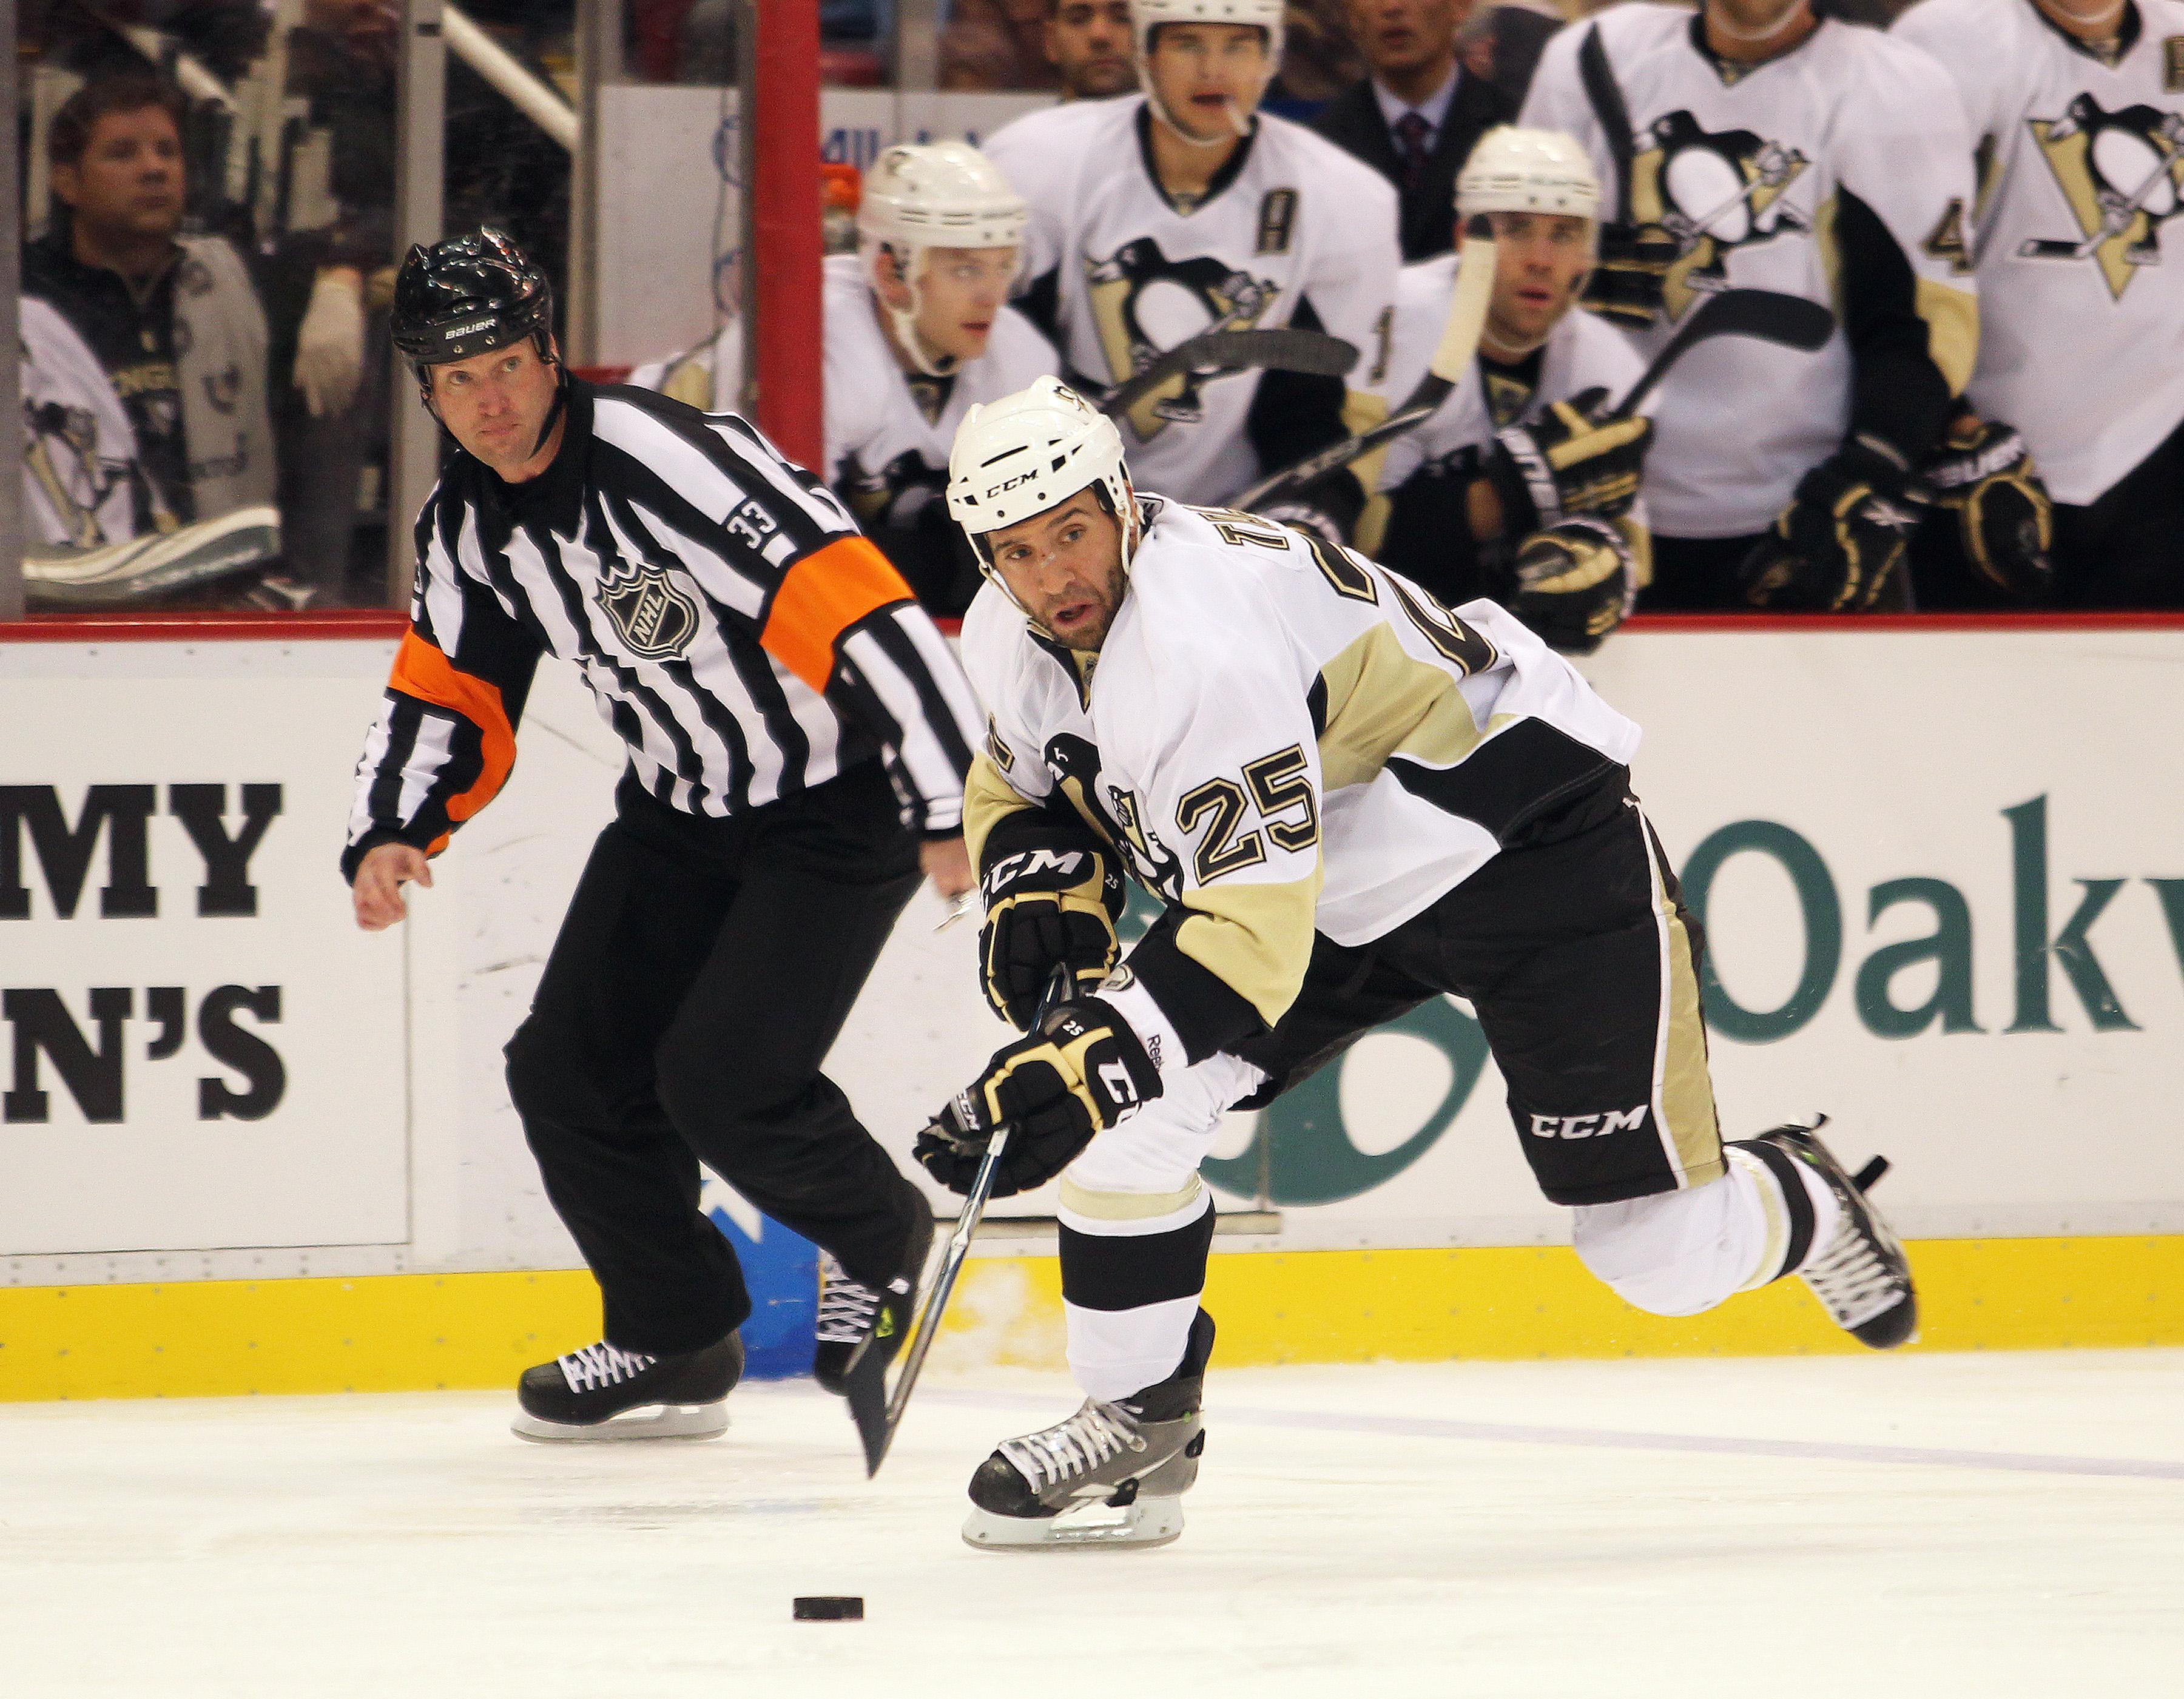 DETROIT, MI - OCTOBER 03:  Max Talbot #25 of the Pittsburgh Penguins skates in on a break in a preseason game against the Detroit Red Wings on October 3, 2010 at the Joe Louis Arena in Detroit, Michigan. The Penguins defeated the Red Wings 5-2. (Photo by